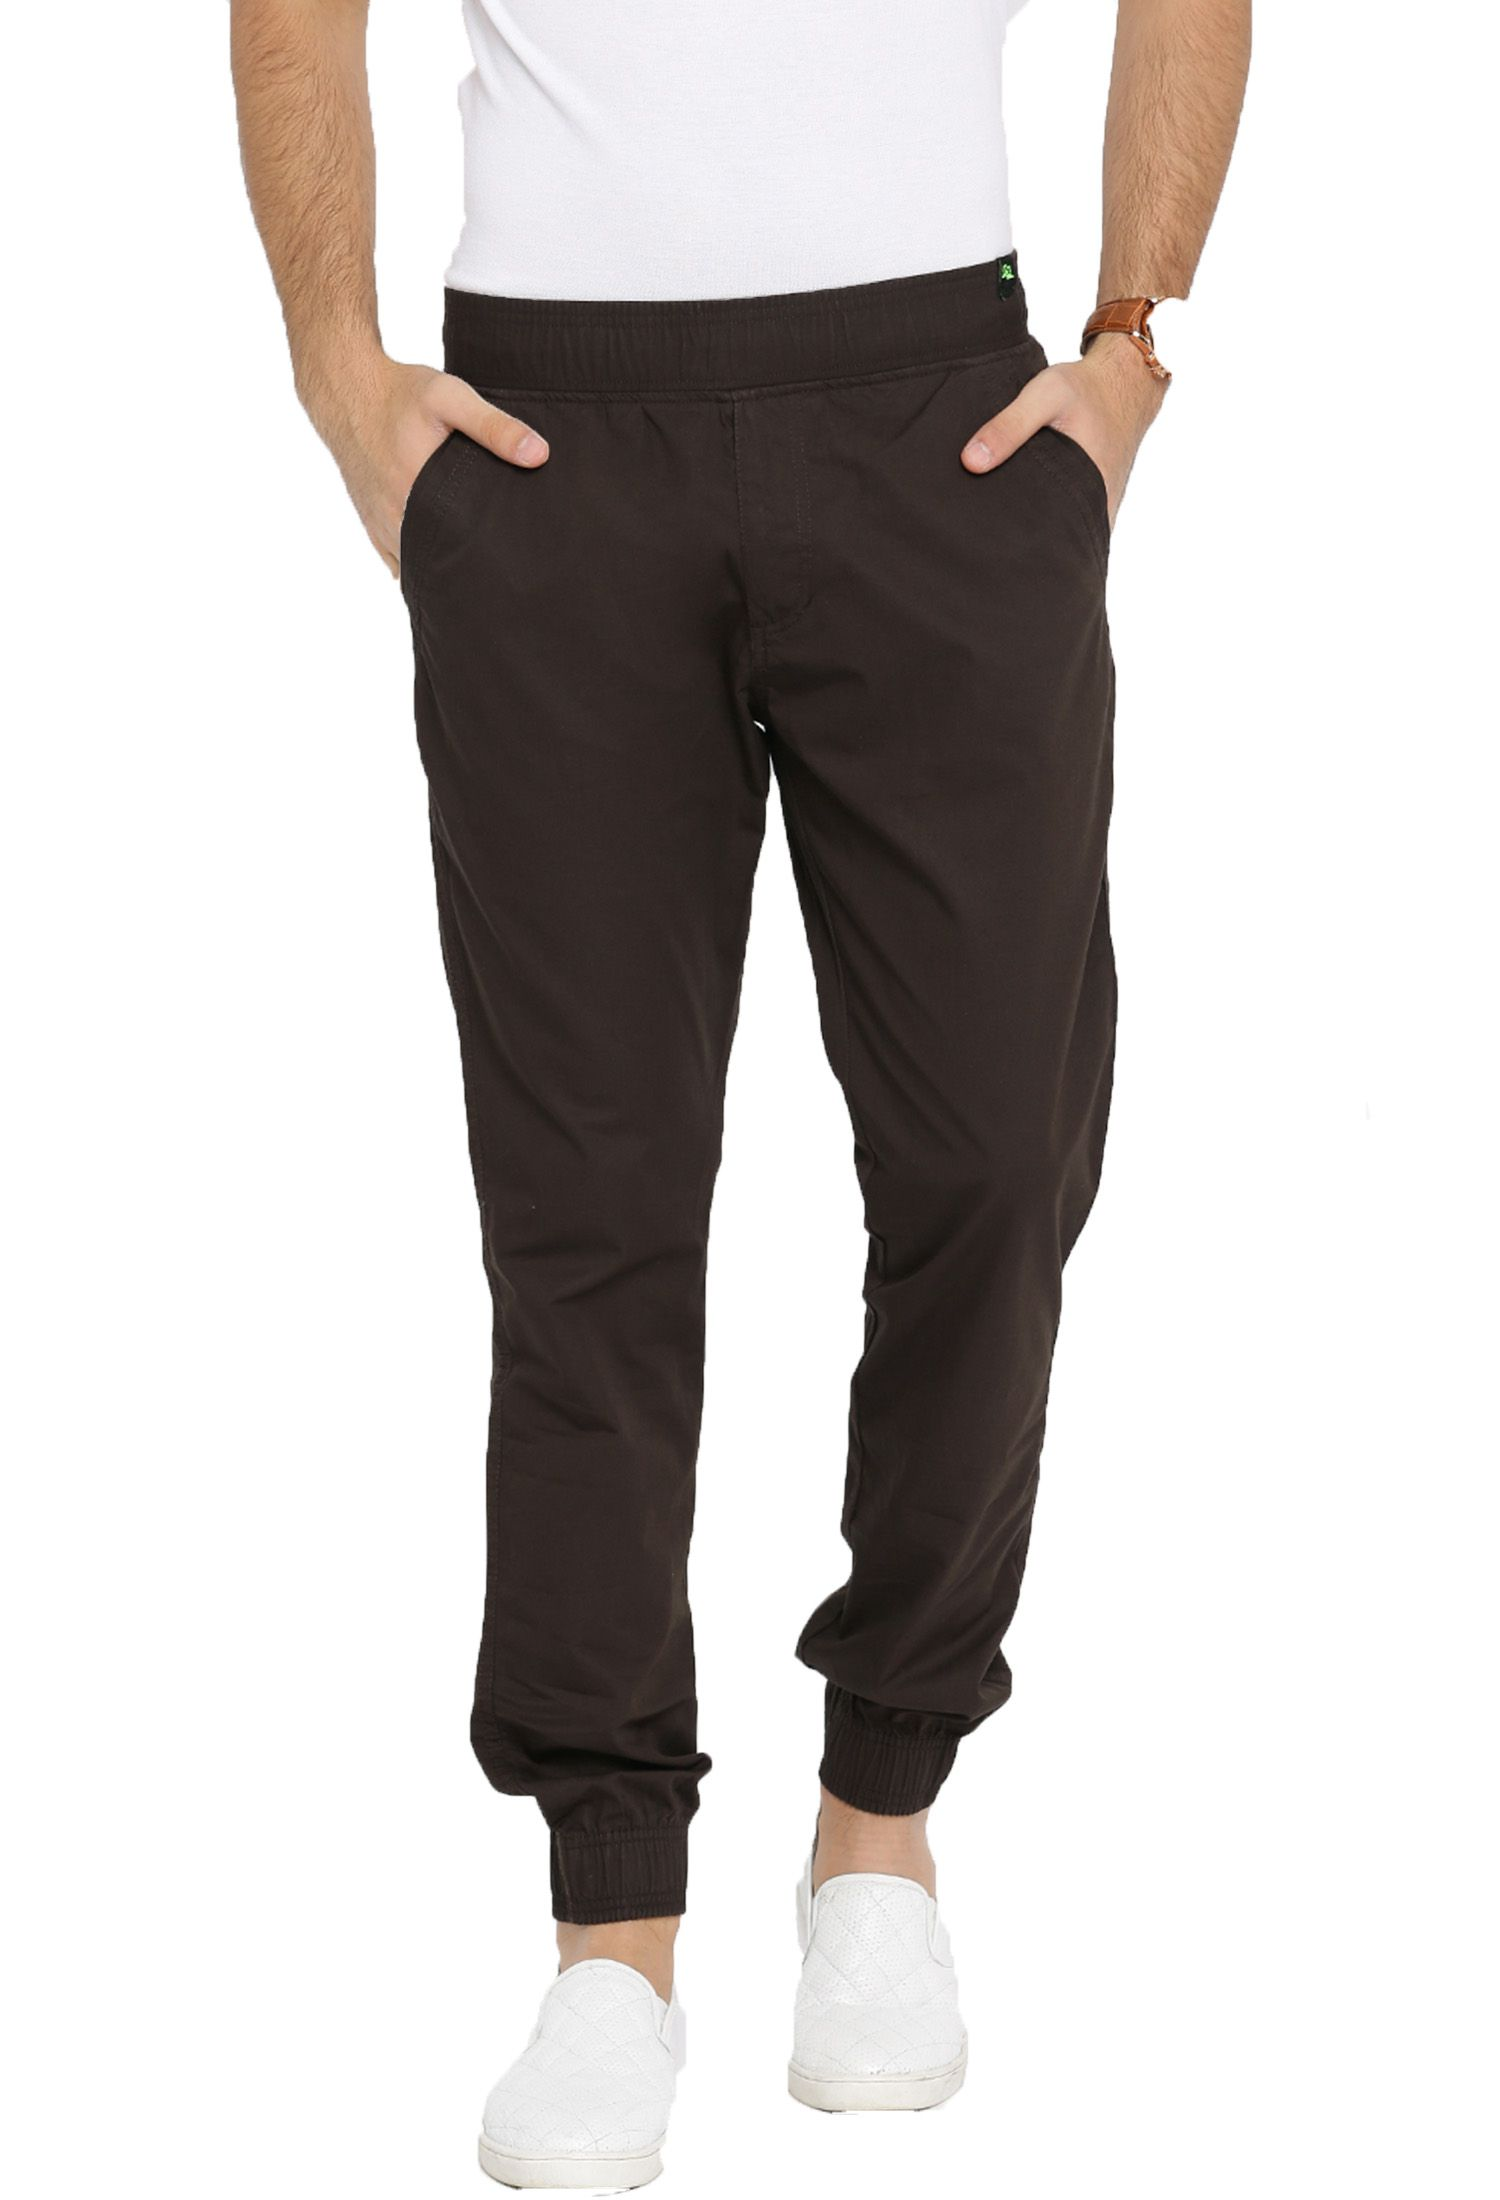 FIFTY TWO Brown Slim -Fit Flat Joggers